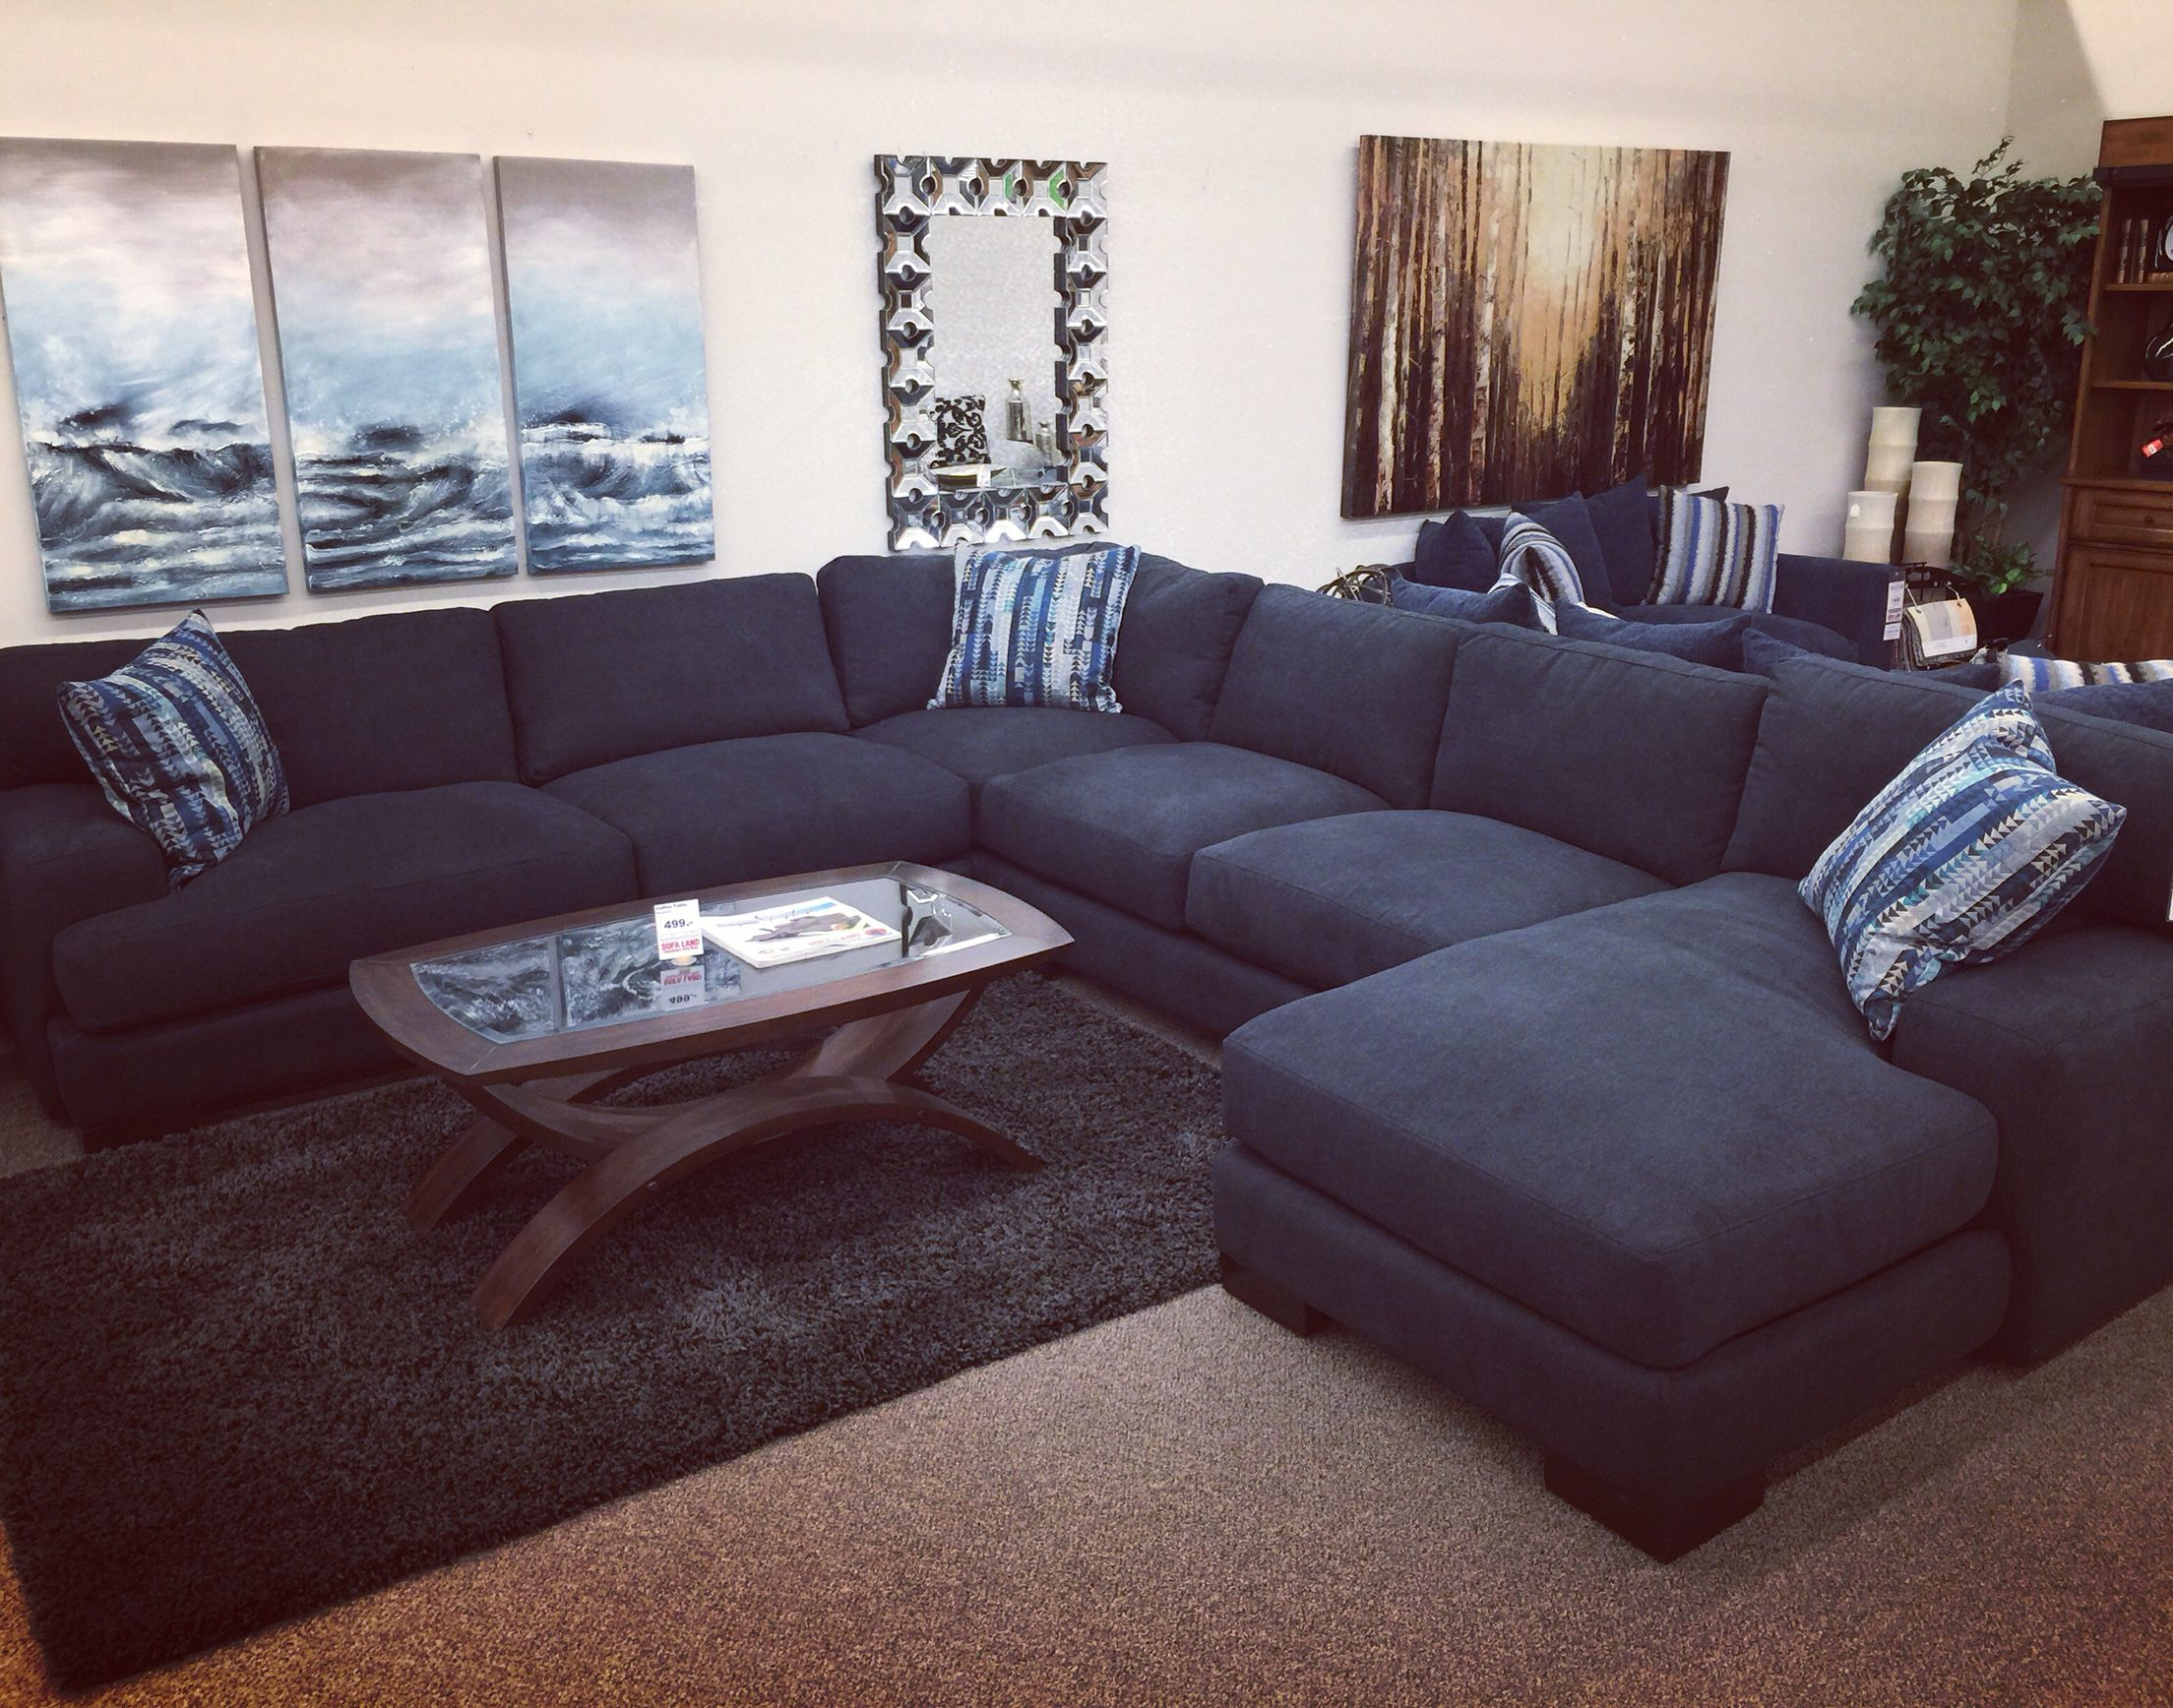 Sofaland Sectional Don T Drop Your Phone Or Keys In This Sectional You May Never